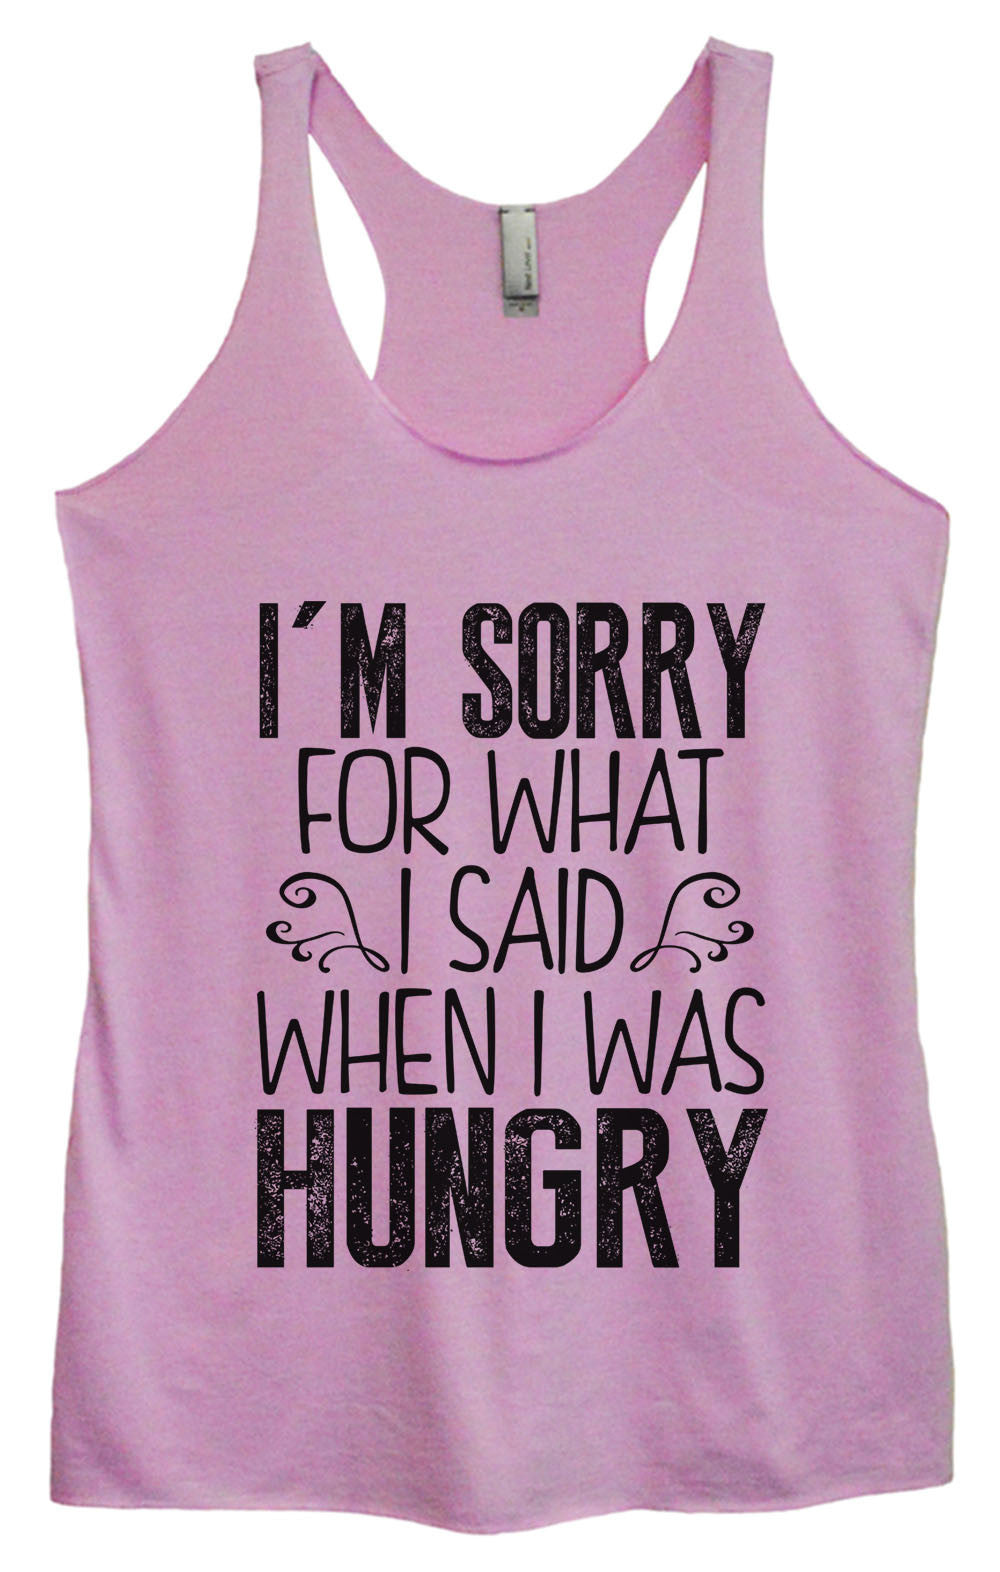 Womens Fashion Triblend Tank Top - I'm Sorry For What I Said When I Was Hungry - Tri-952 - Funny Shirts Tank Tops Burnouts and Triblends  - 3